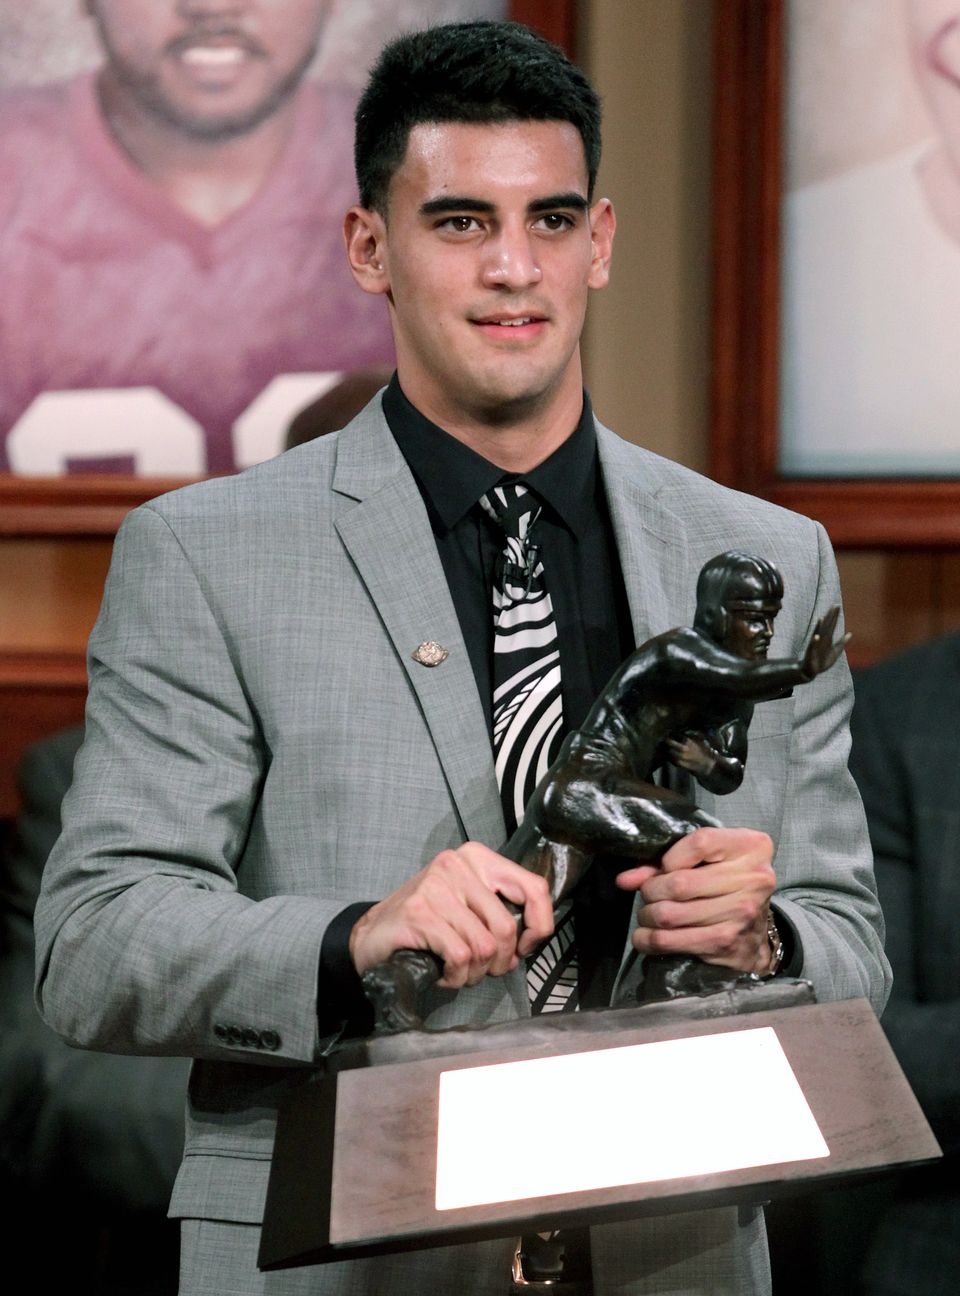 Marcus mariota became the first oregon ducks player to win the heisman